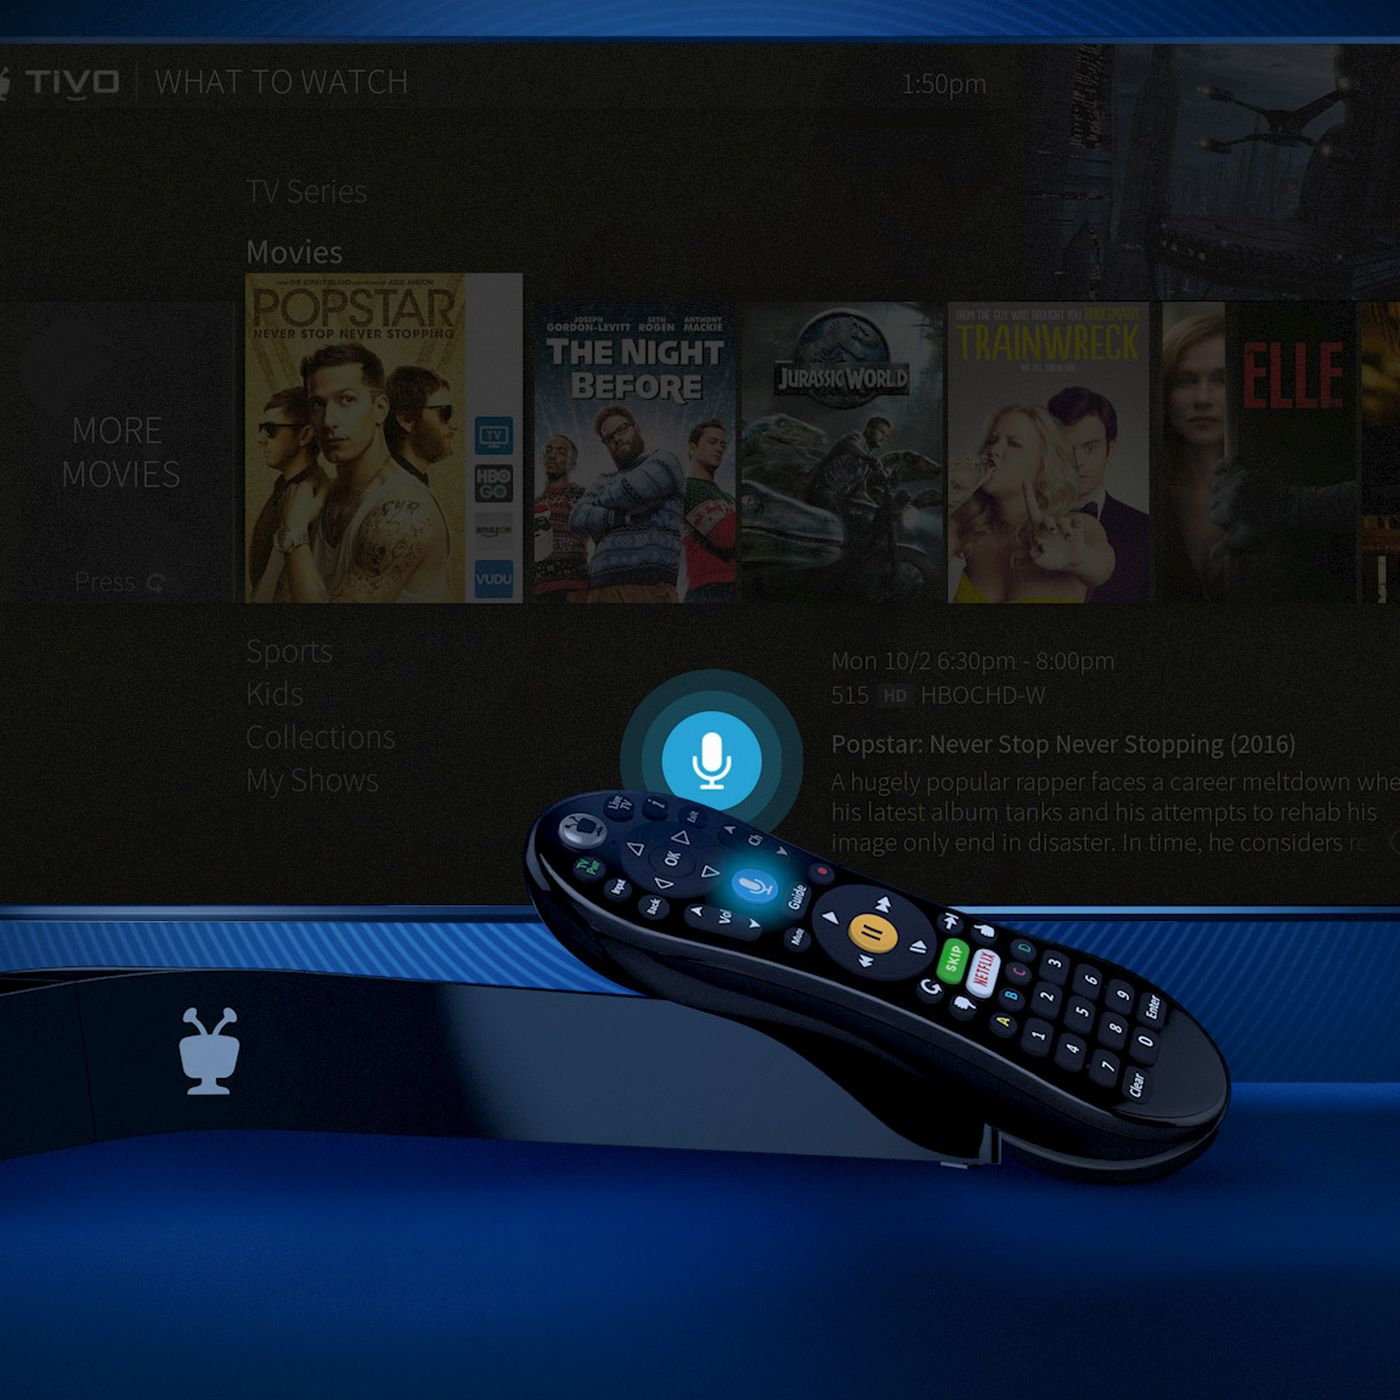 Tivos New Bolt Vox Dvr Has Voice Search Built Into The Remote Directv Genie Wiring Diagram For 10 Base T Verge